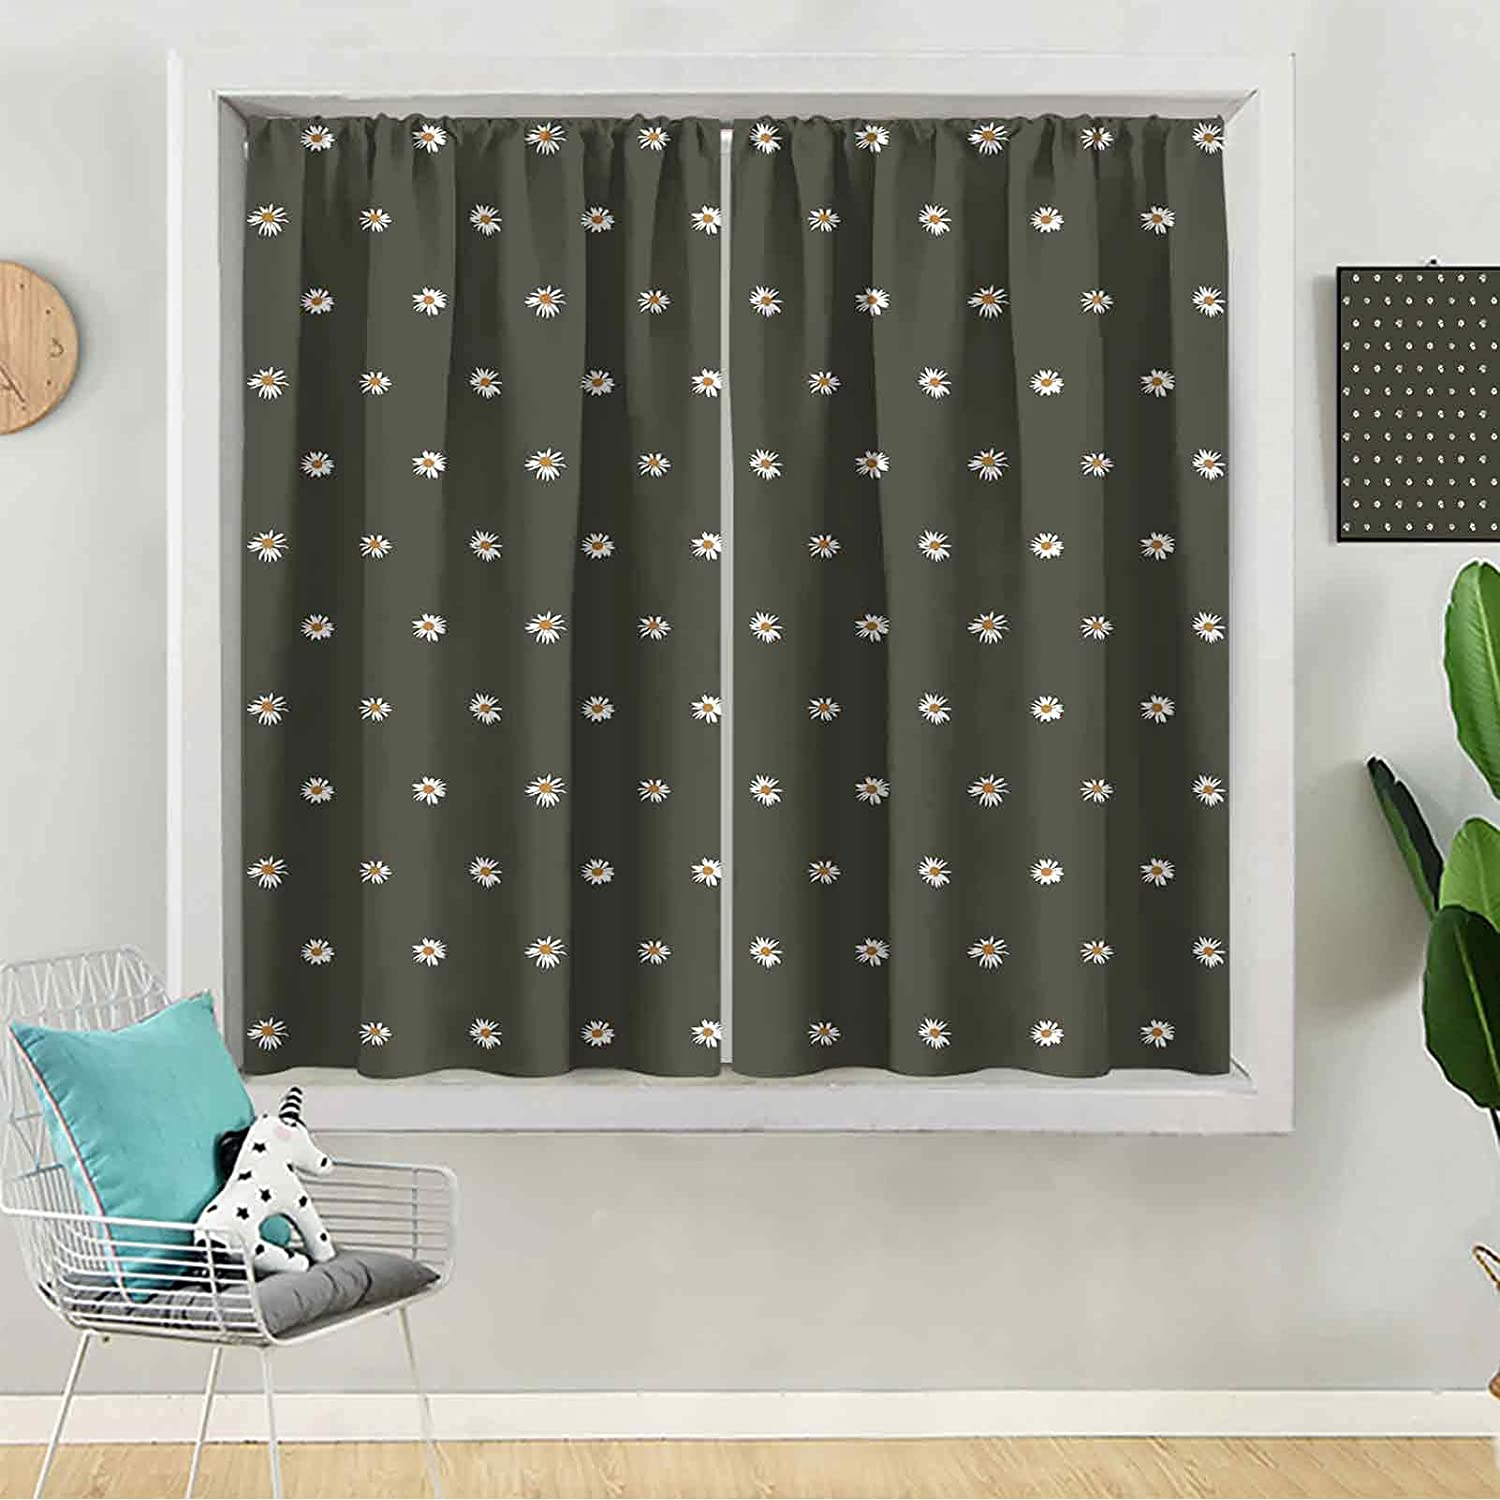 Bedroom Blackout Curtains Seamless Pattern Daisy Bl Max 64% OFF Max 44% OFF on of White